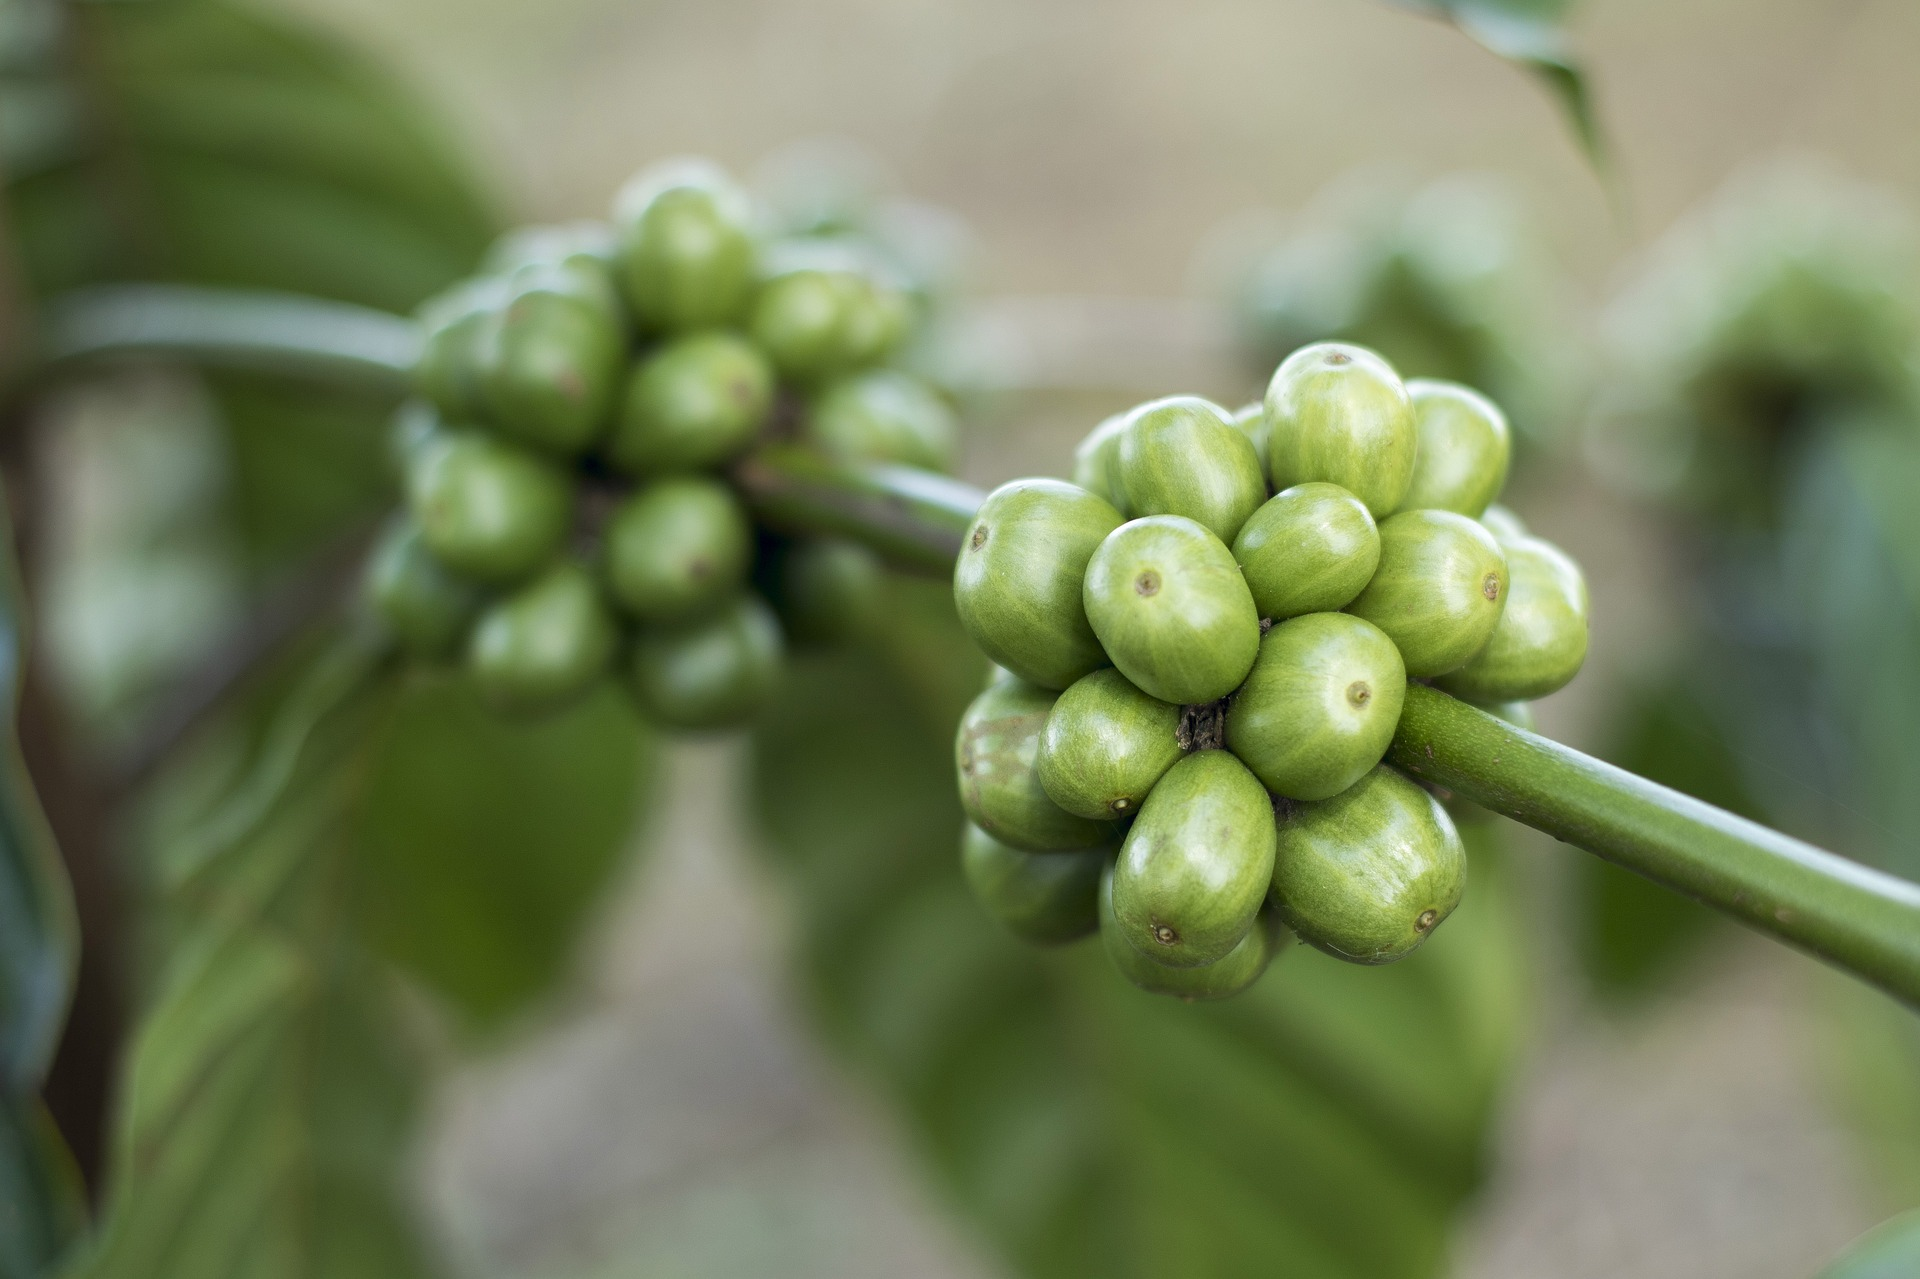 Where Did Green Coffee Bean Extract Come From?